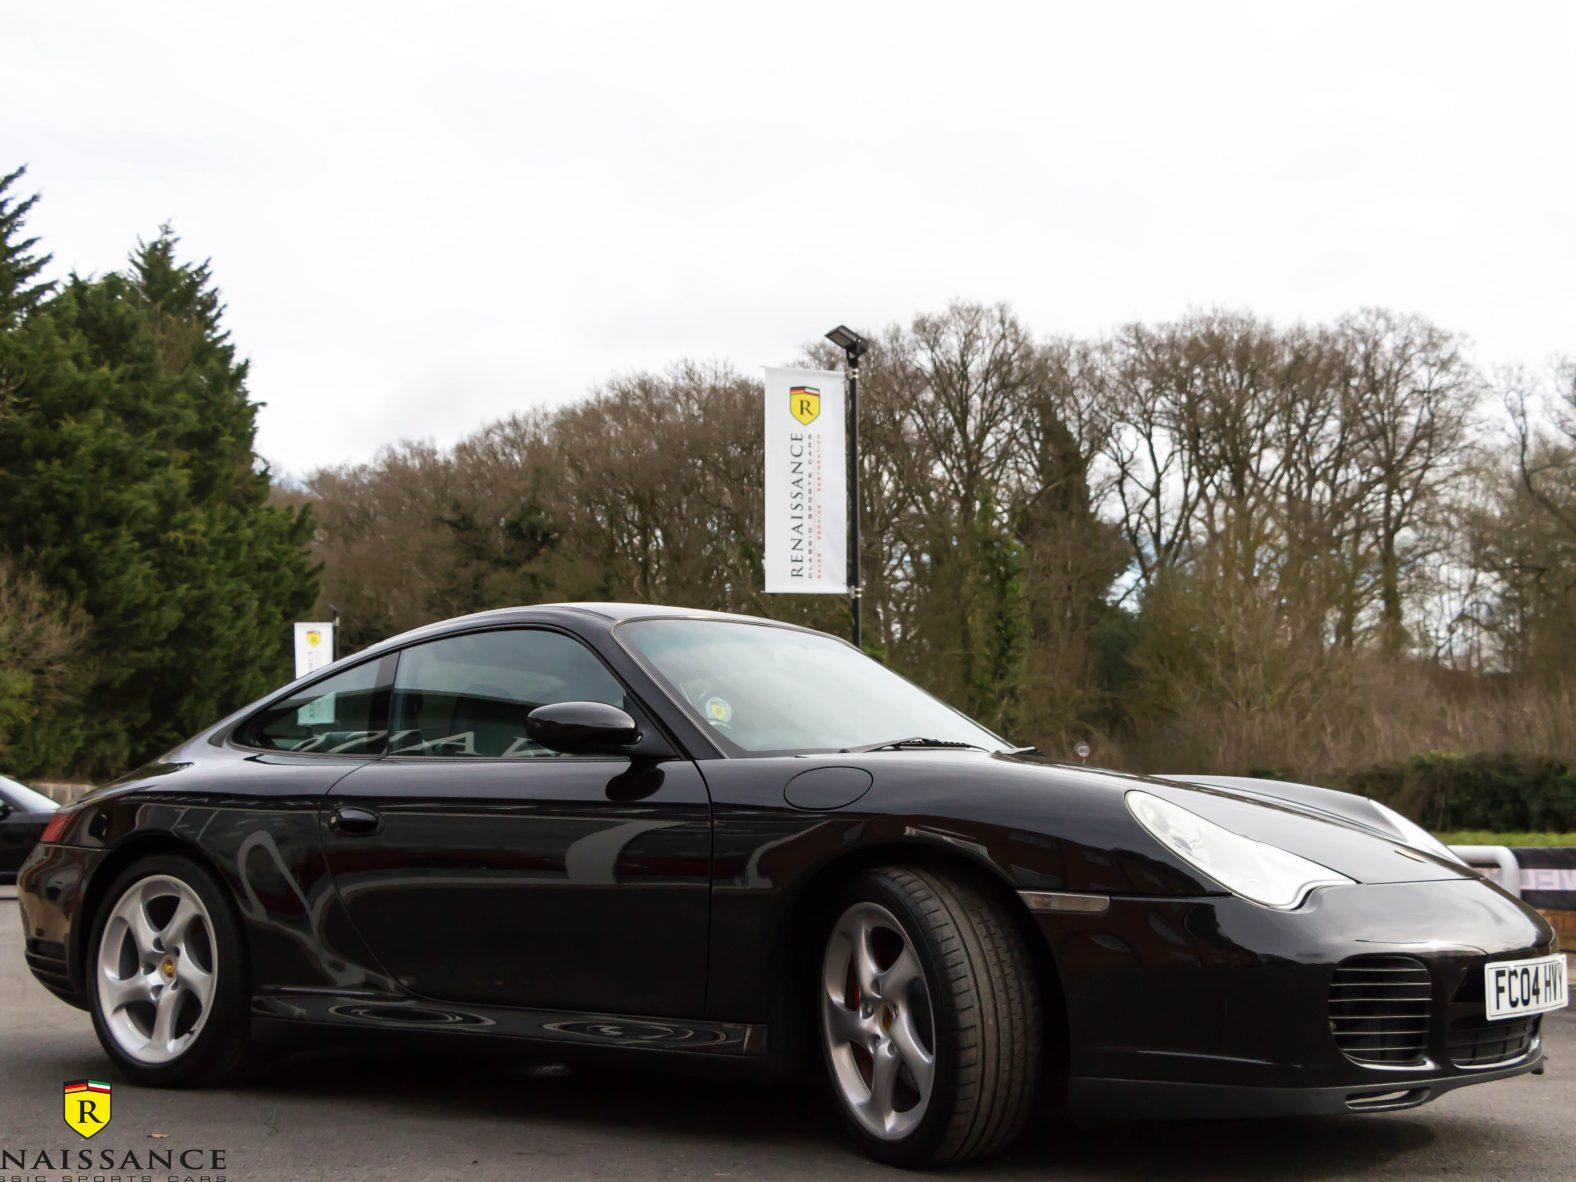 BLACK 996 C4S LEFT US WITH ITS NEW OWNER